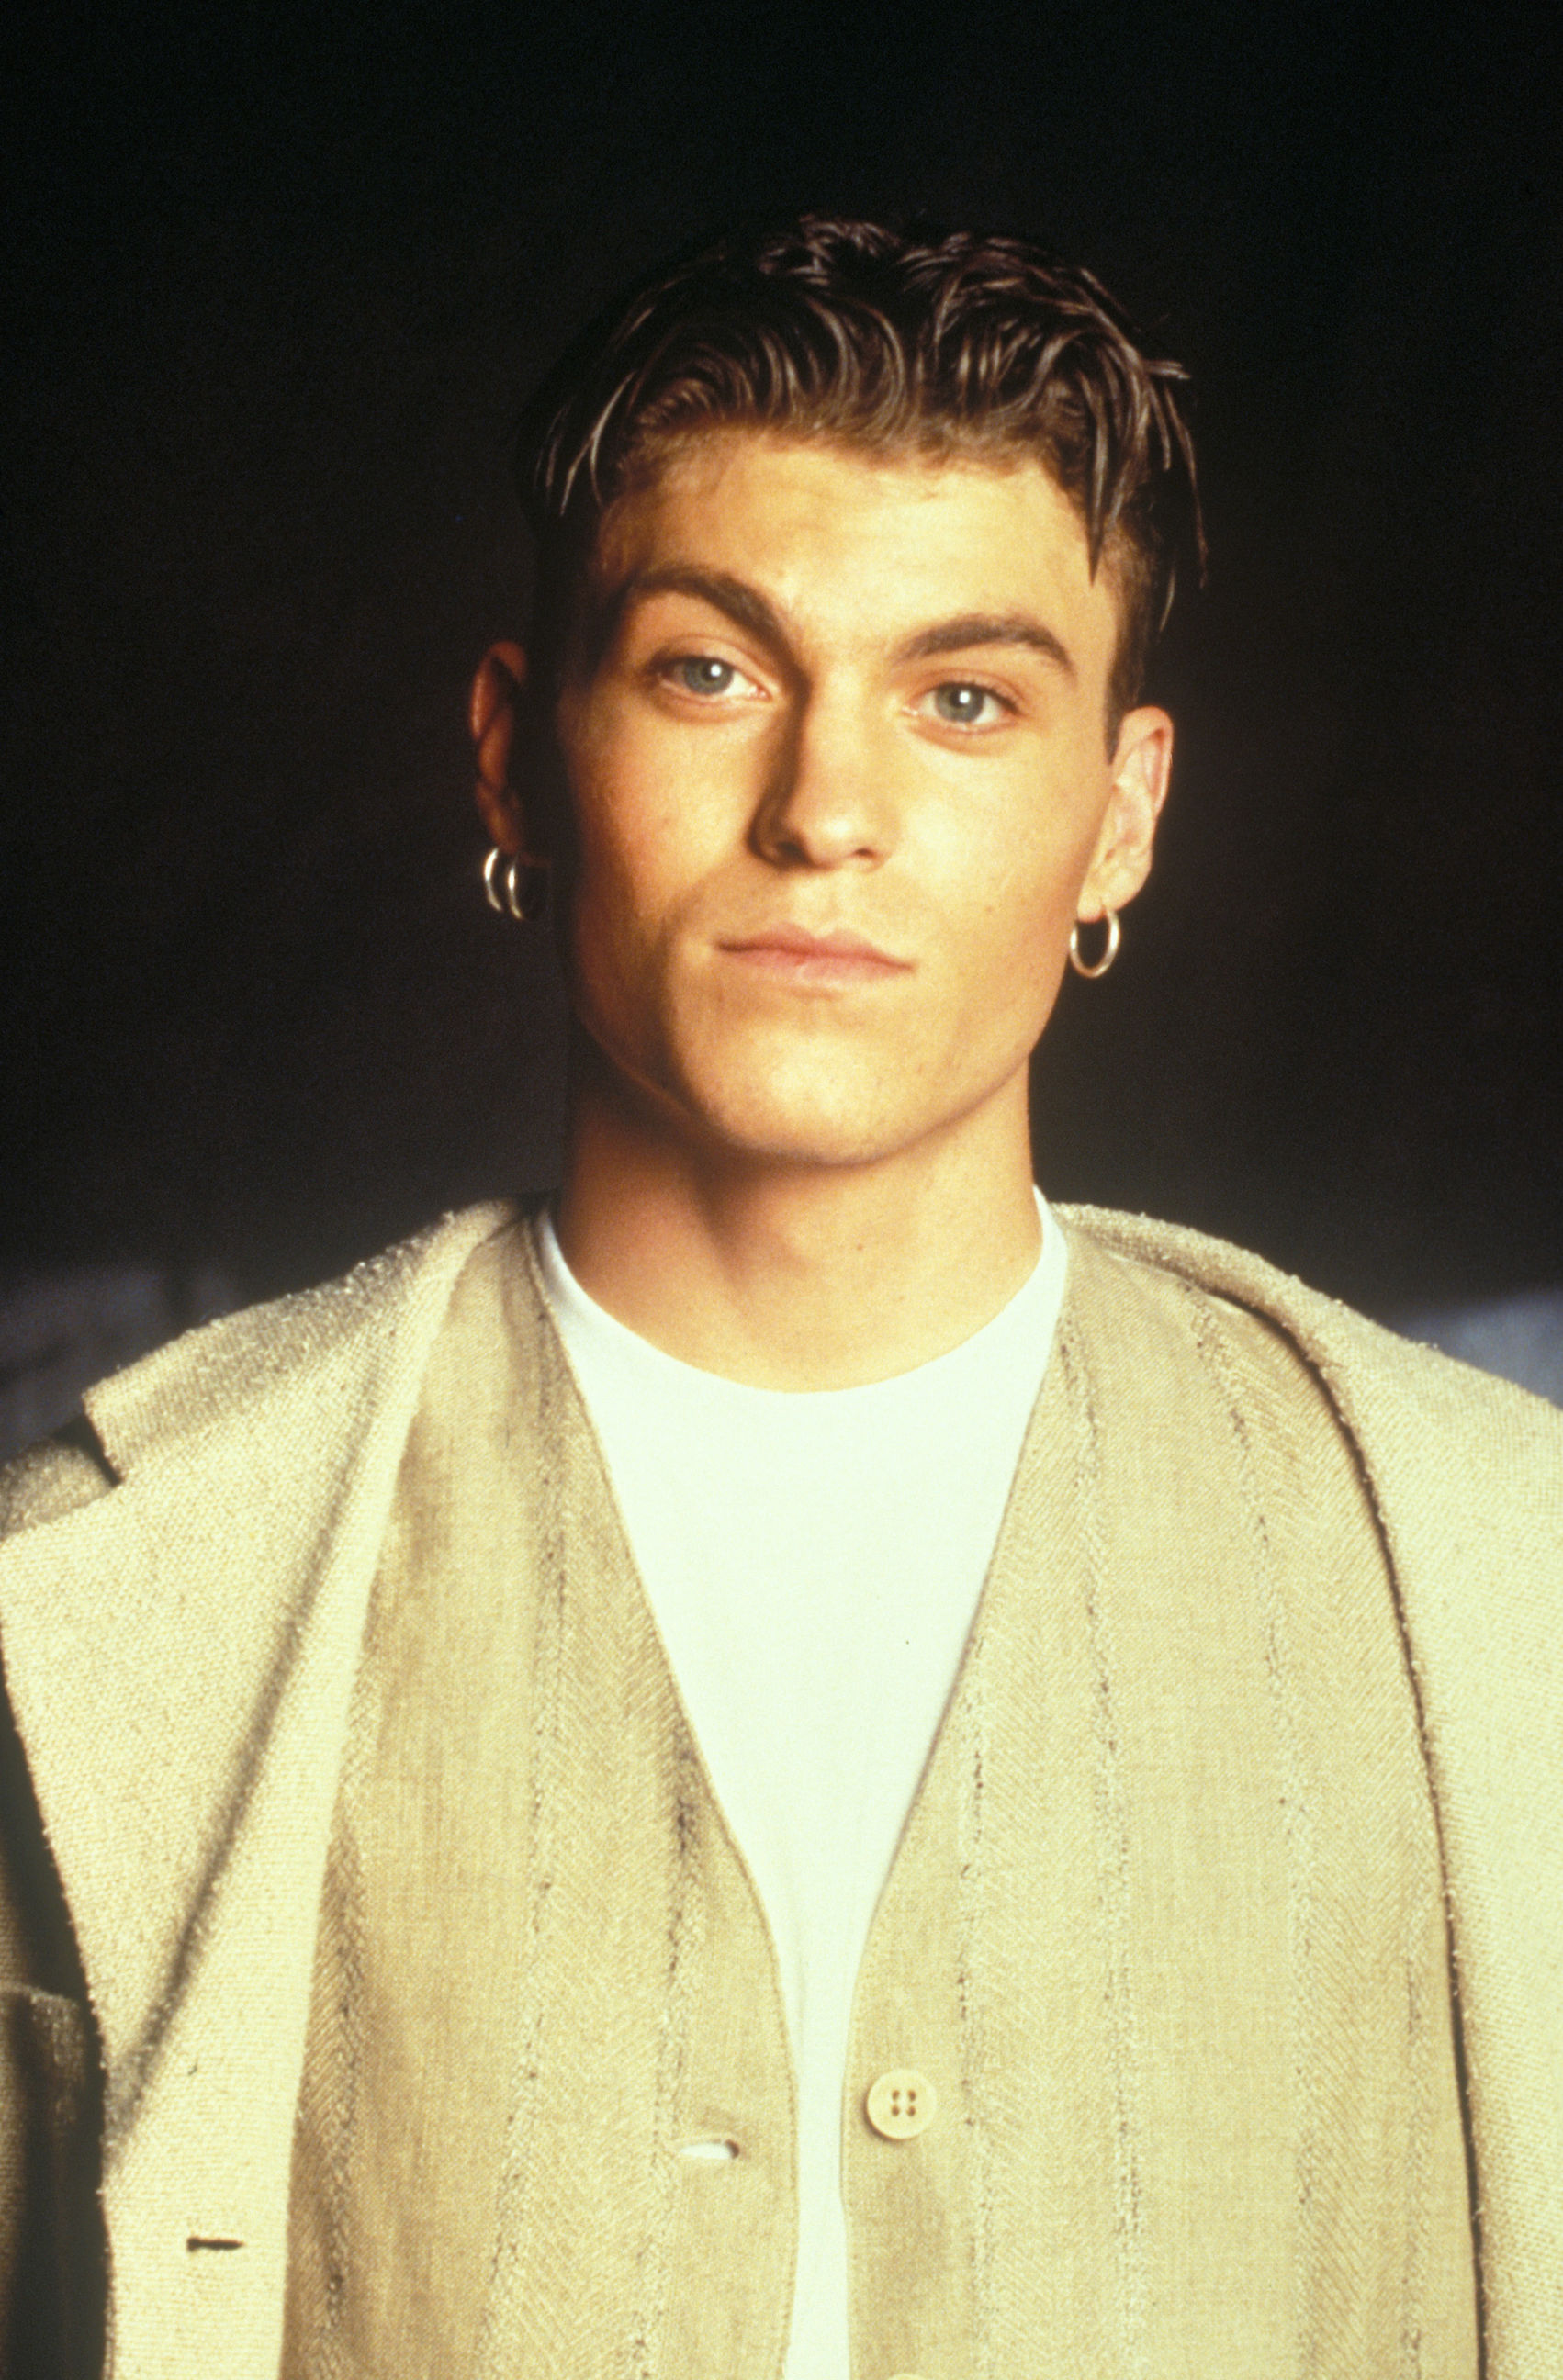 the 15 most important men's hairstyles of the '90s